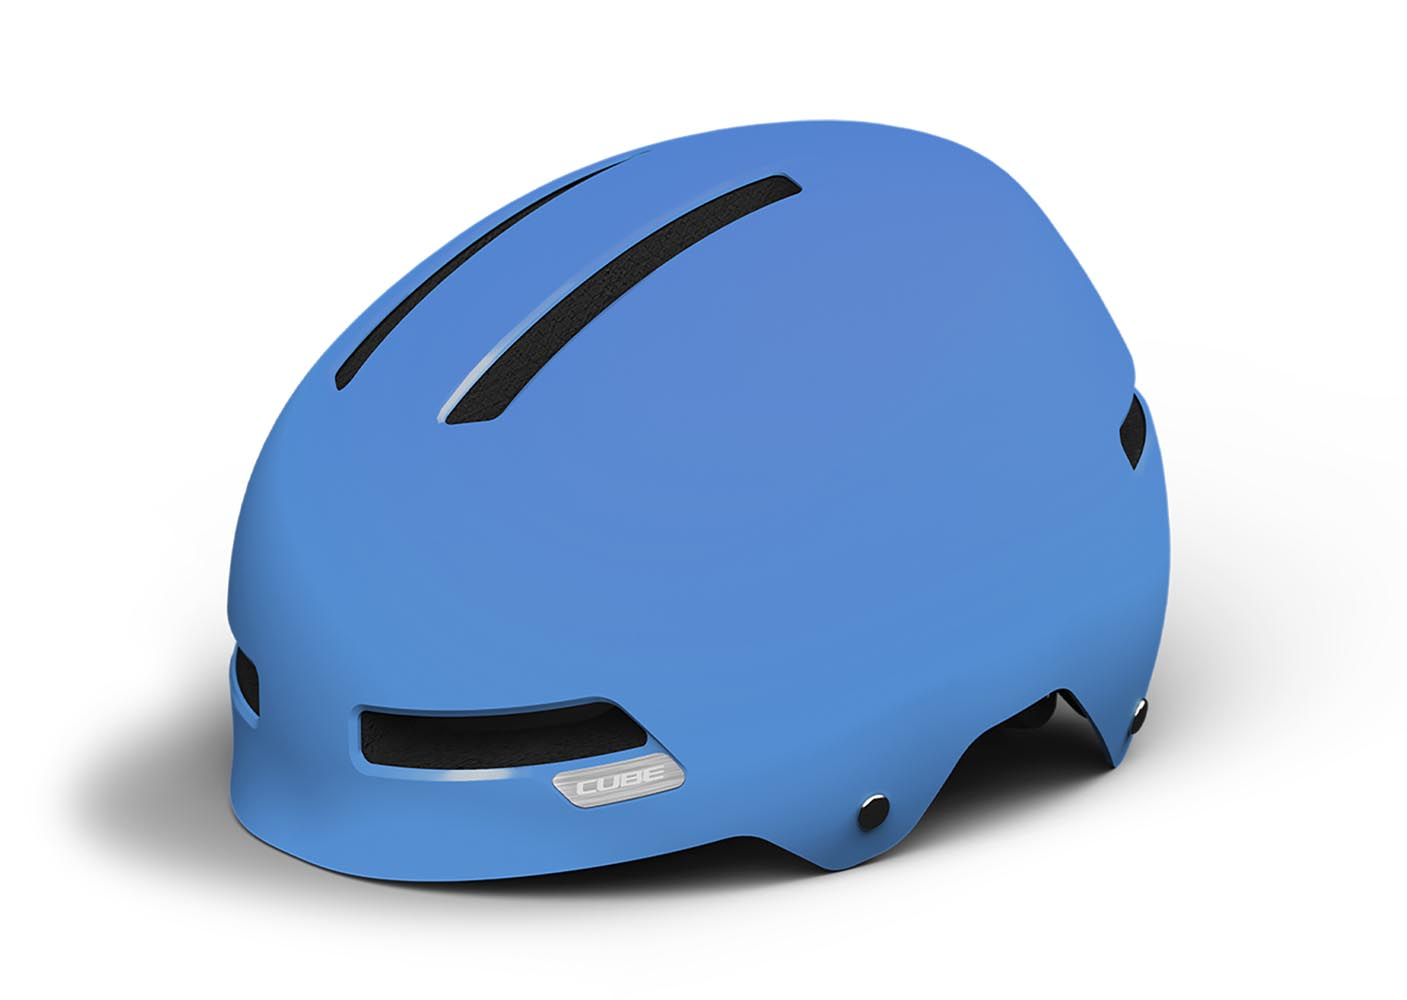 KACIGA CUBE DIRT 2.0 BLUE